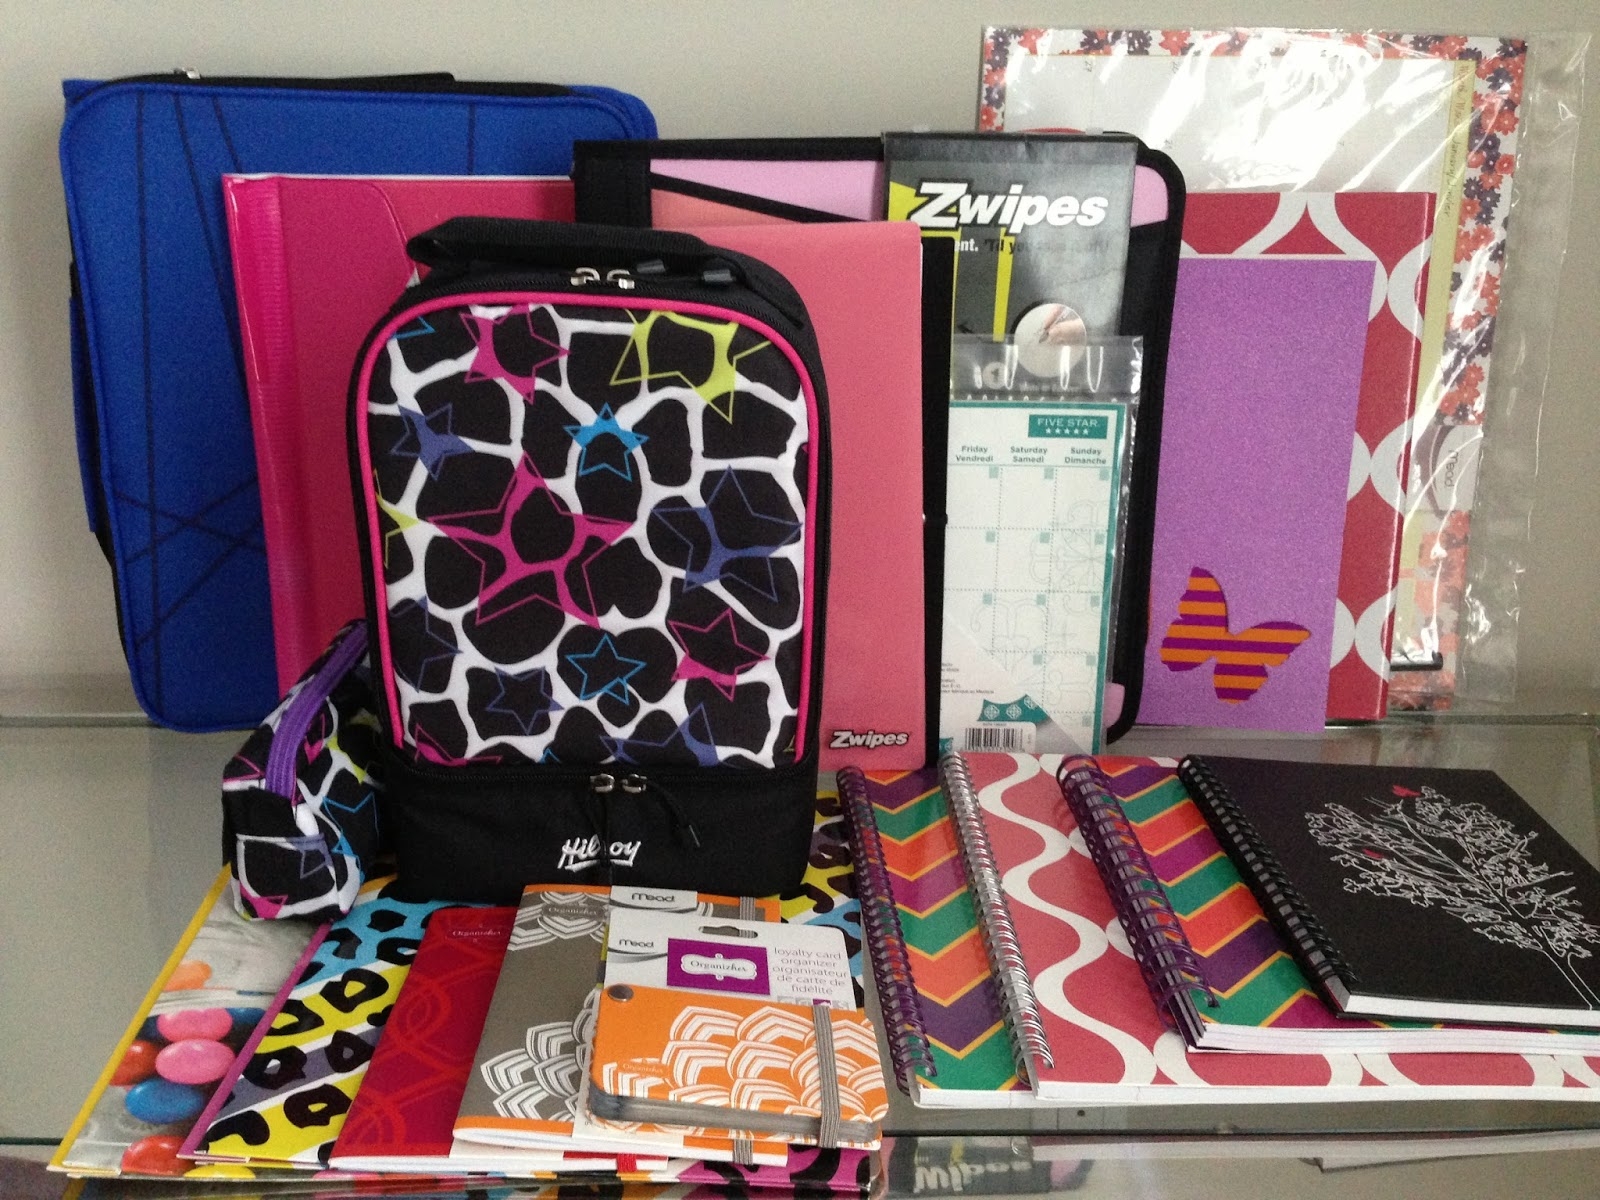 611b1def3b54b3 ... lunch bag, binders, notebooks) and products to make YOUR life easier (a  card organizer, a spending tracker, and a calorie tracker) and the best  part is?